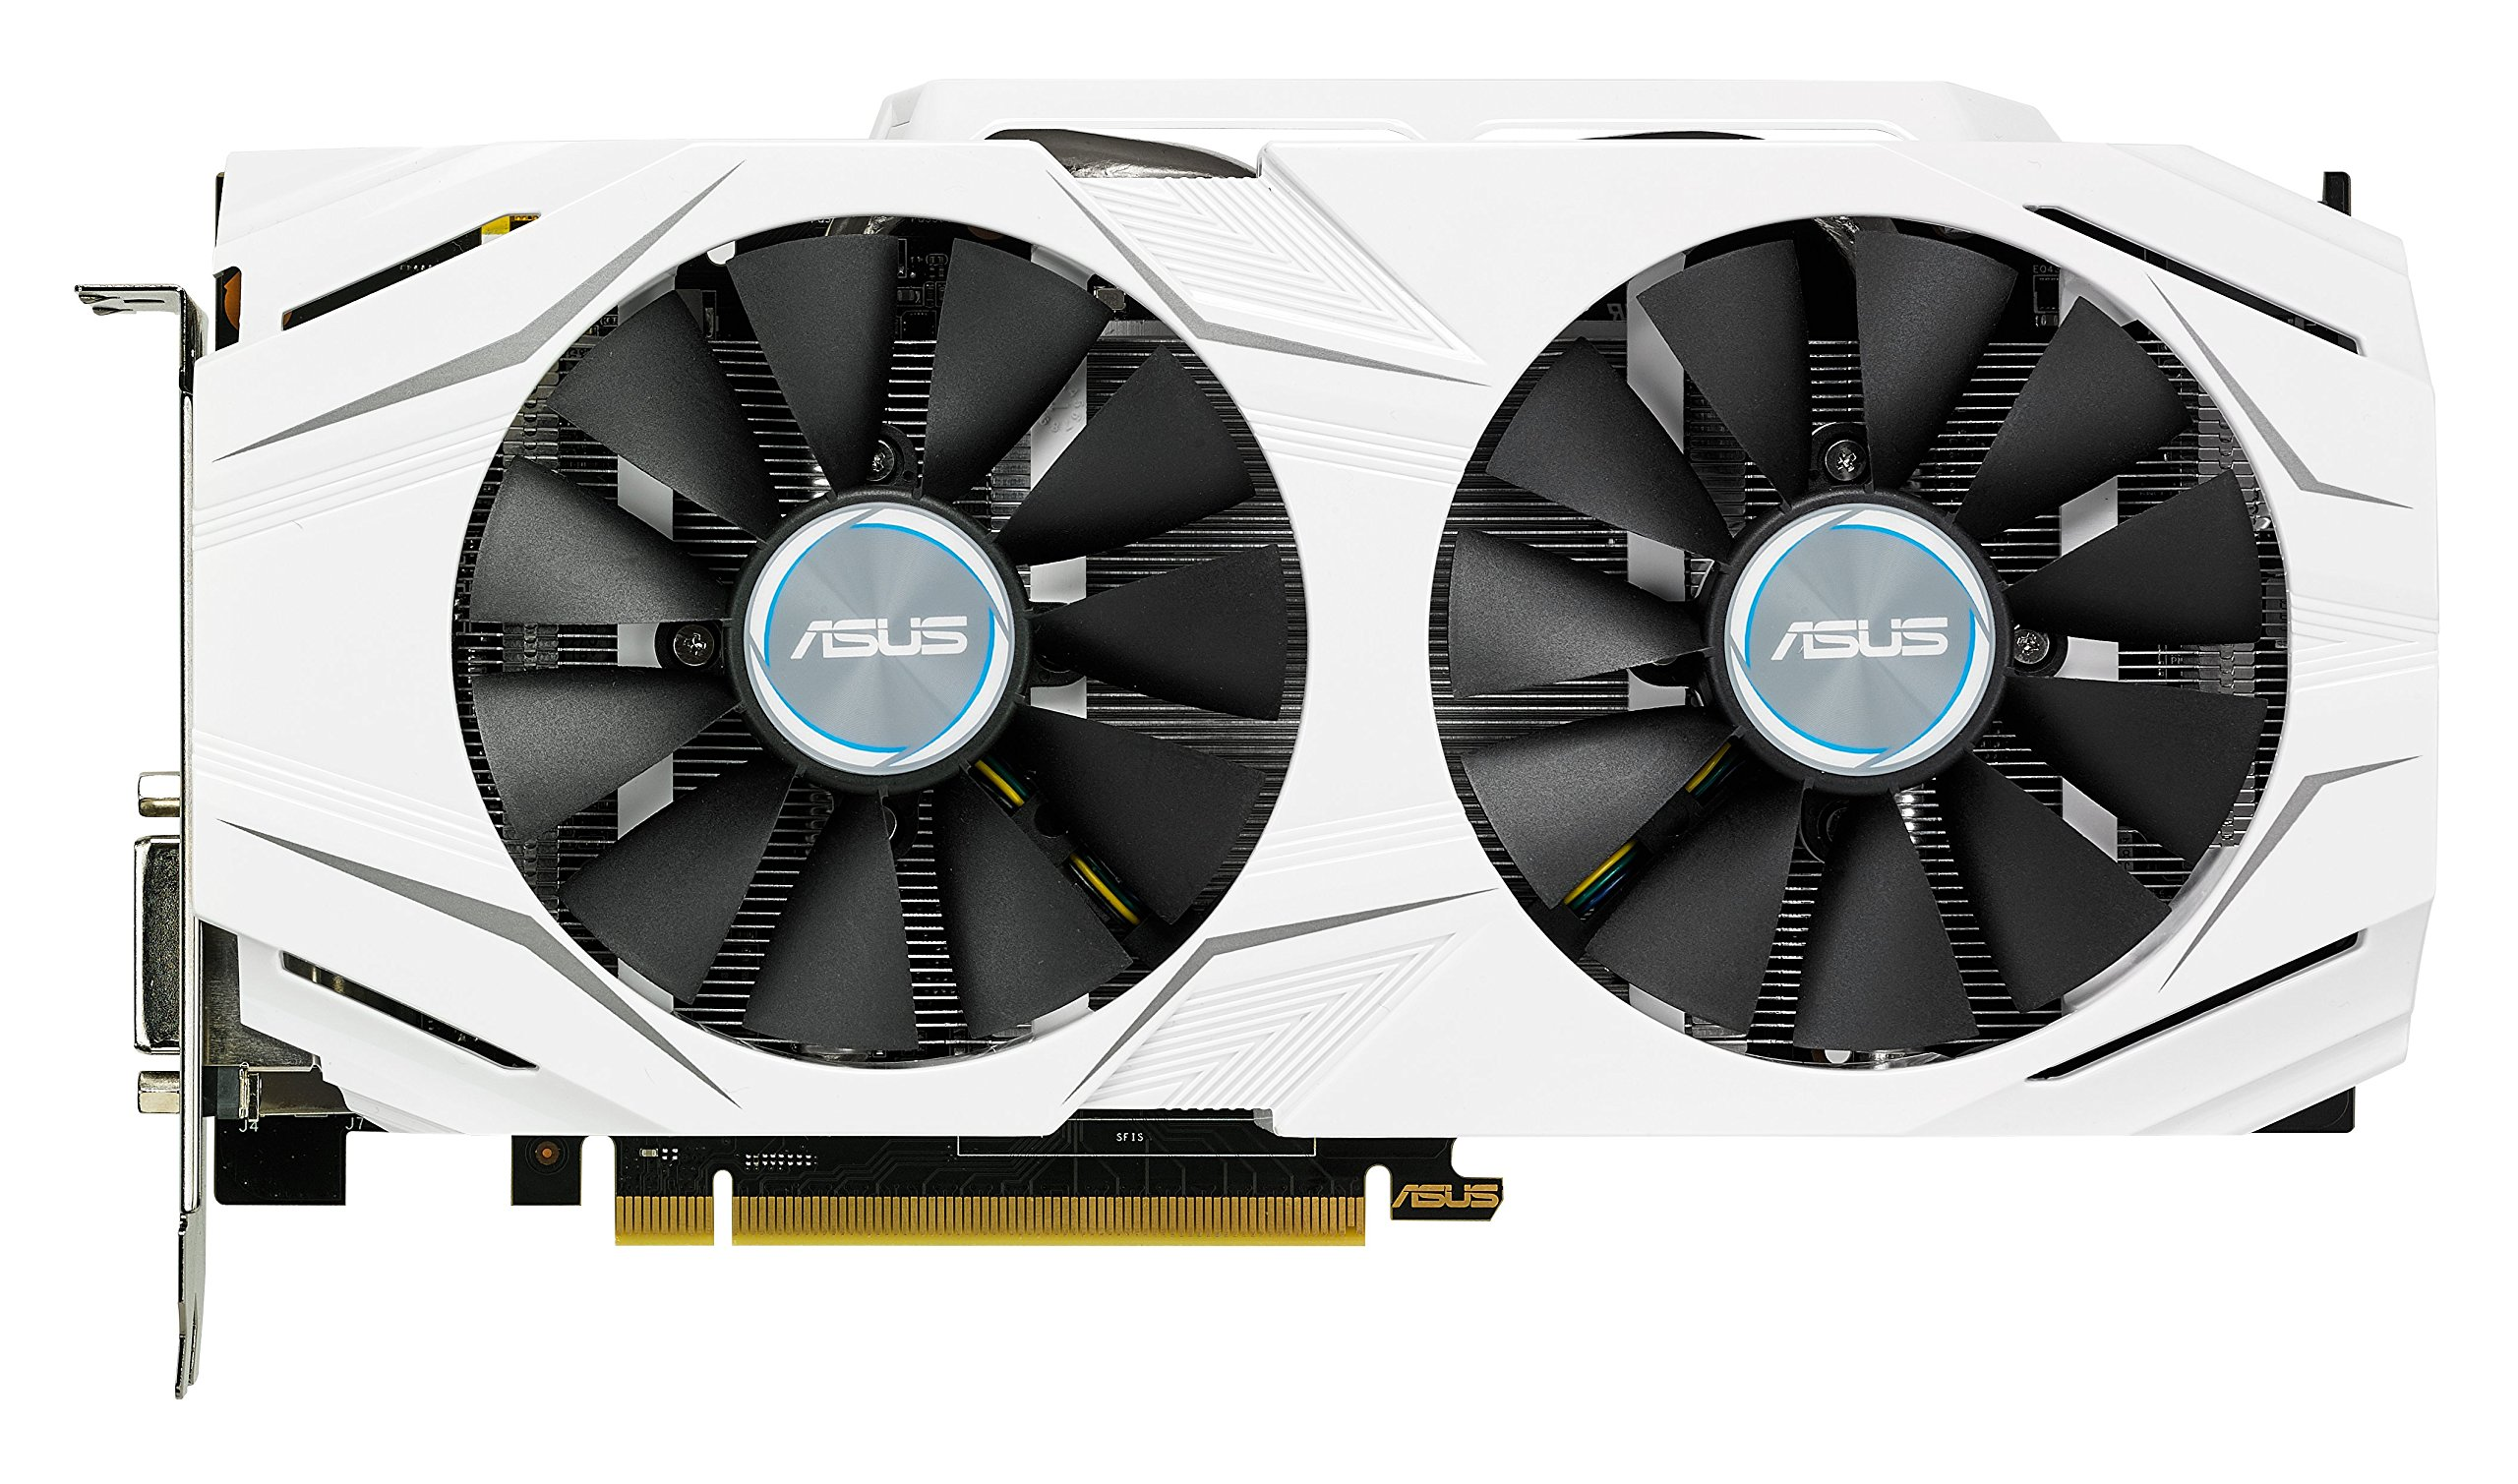 ASUS GeForce GTX 1060 6GB Dual-fan OC Edition VR Ready Dual HDMI DP 1.4 Gaming Graphics Card (DUAL-GTX1060-O6G) by Asus (Image #1)